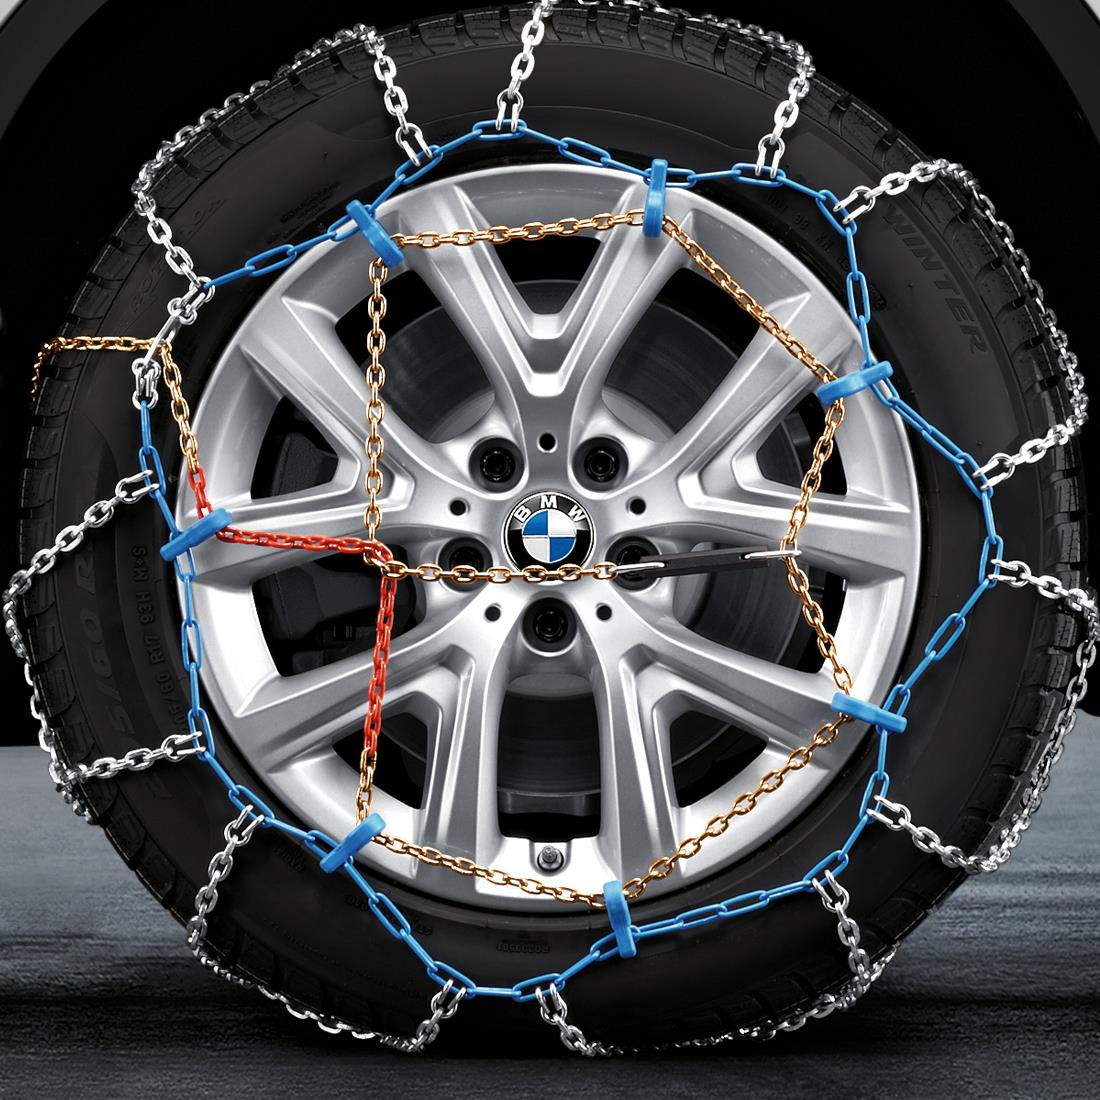 BMW Snow Chain System - 225/501/R17 & 225/55/R16